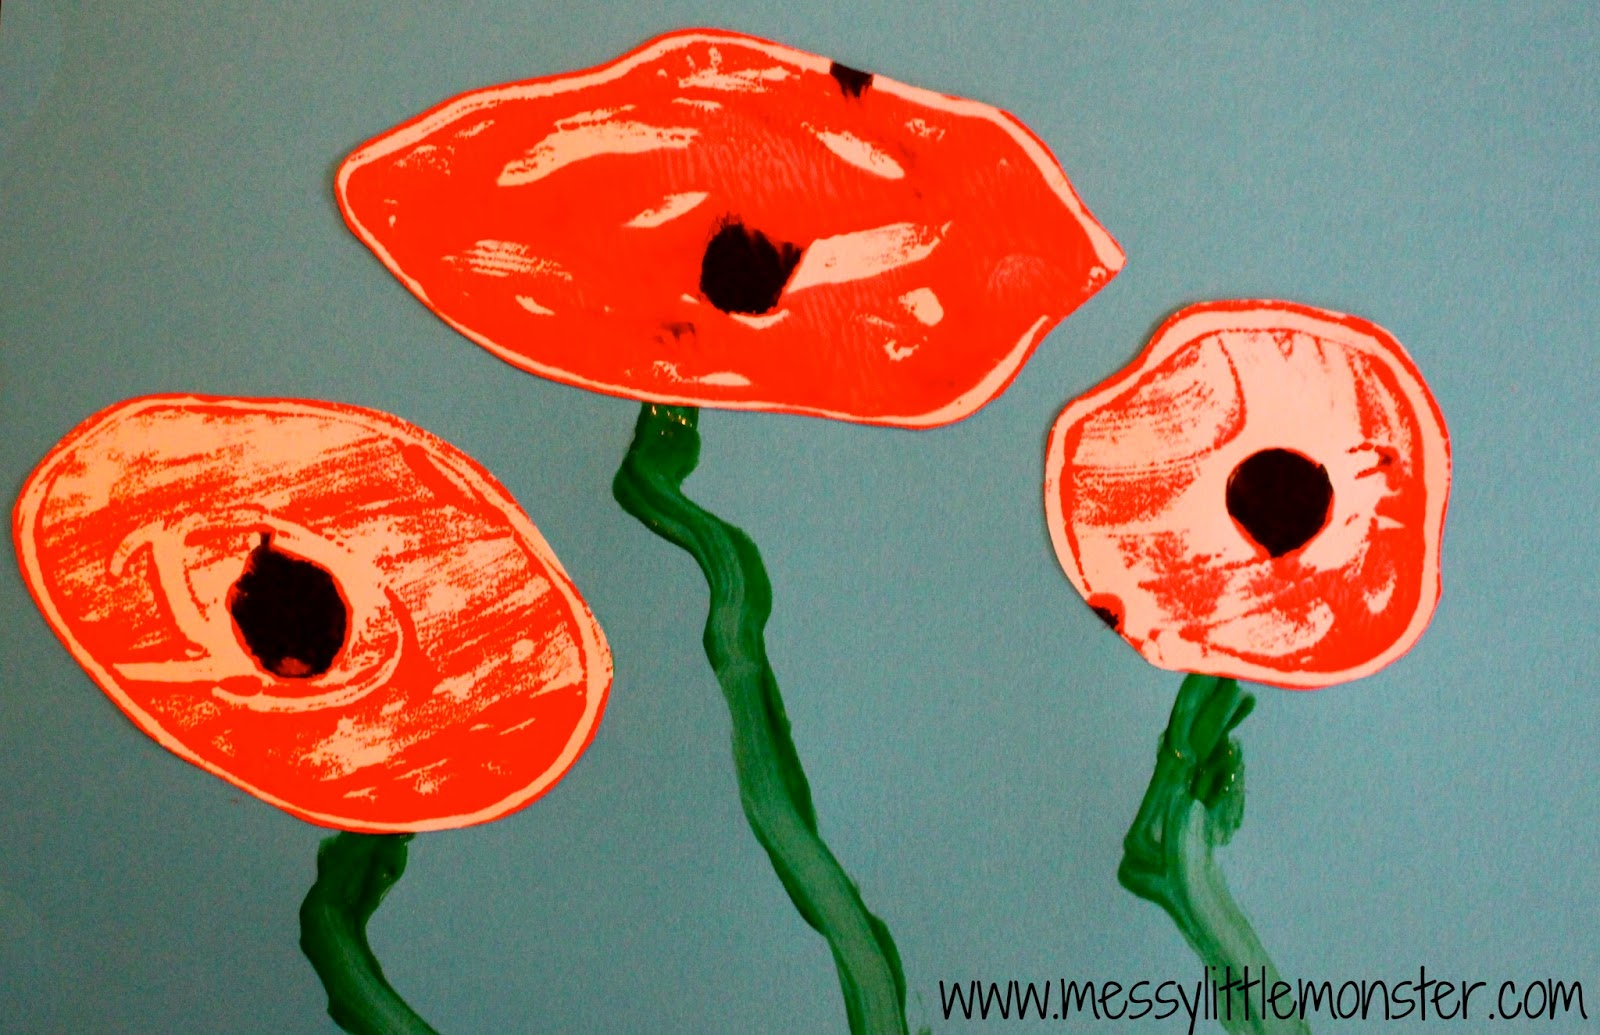 Simple poppy craft for kids for remembrance day. Easy art techniques - mono printing. Great for toddlers and preschoolers.